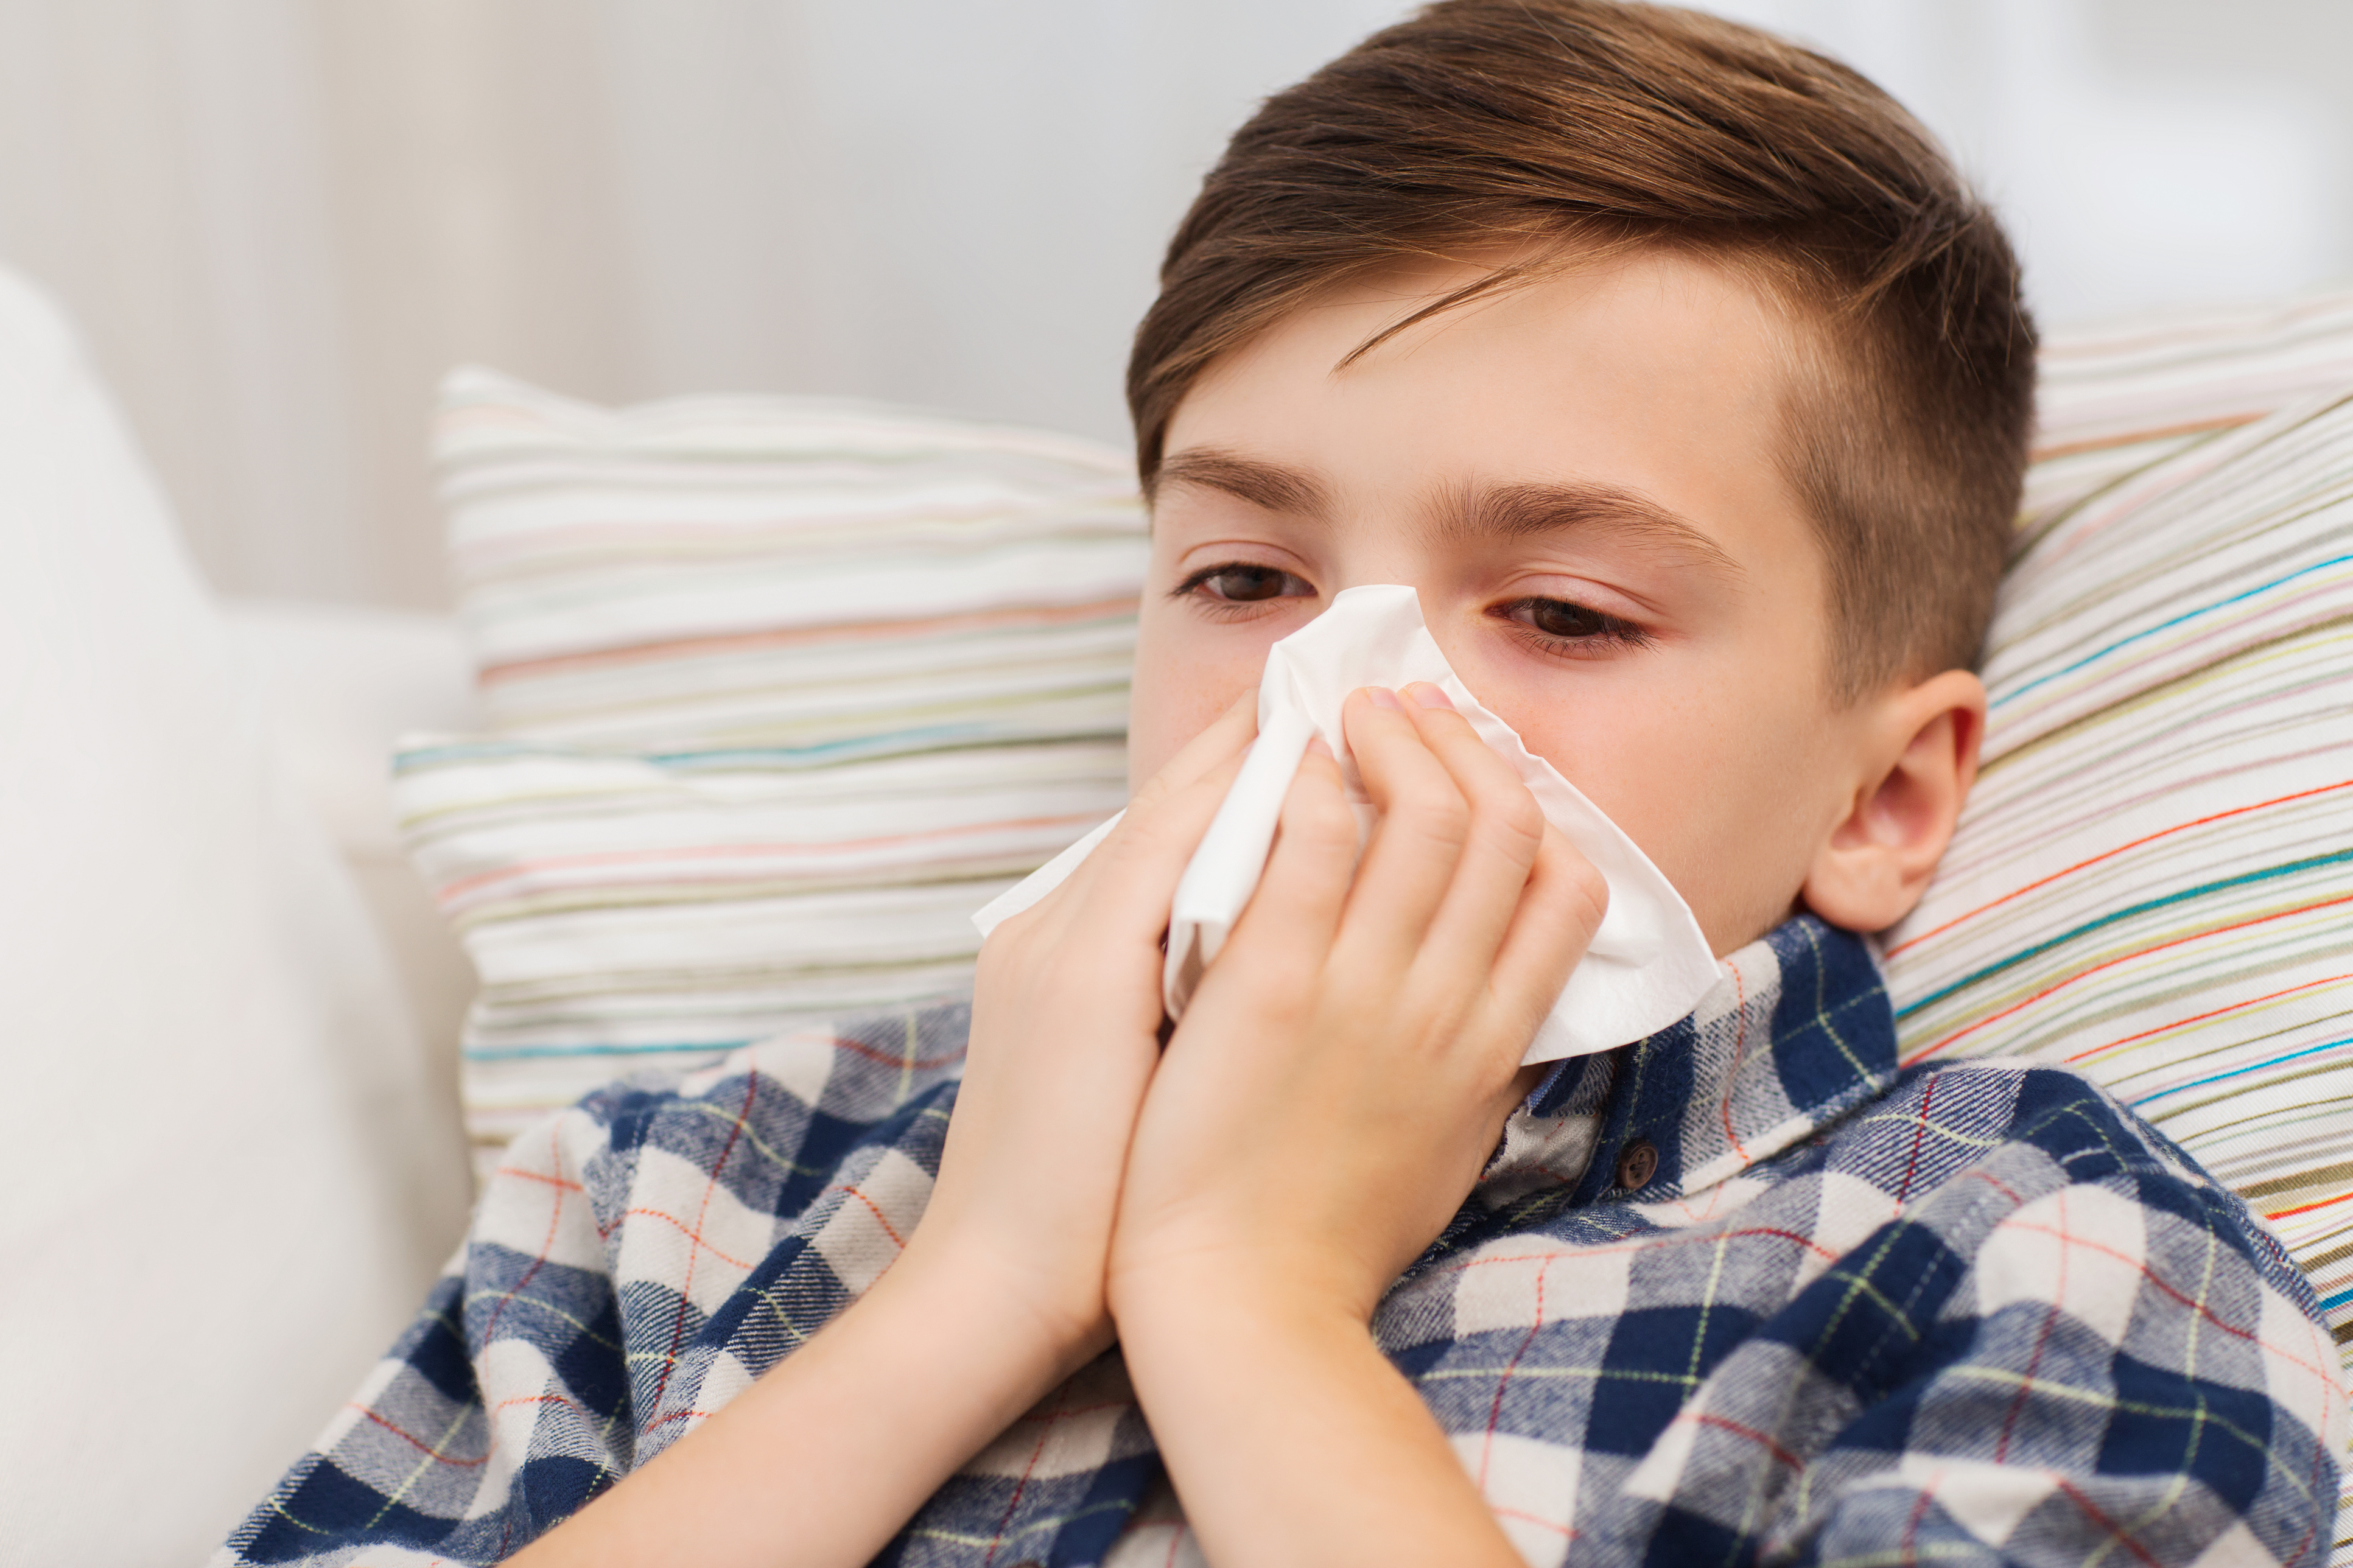 Carbondale oklahoma physical therapy - Colds Flu Cough Too Sick For School